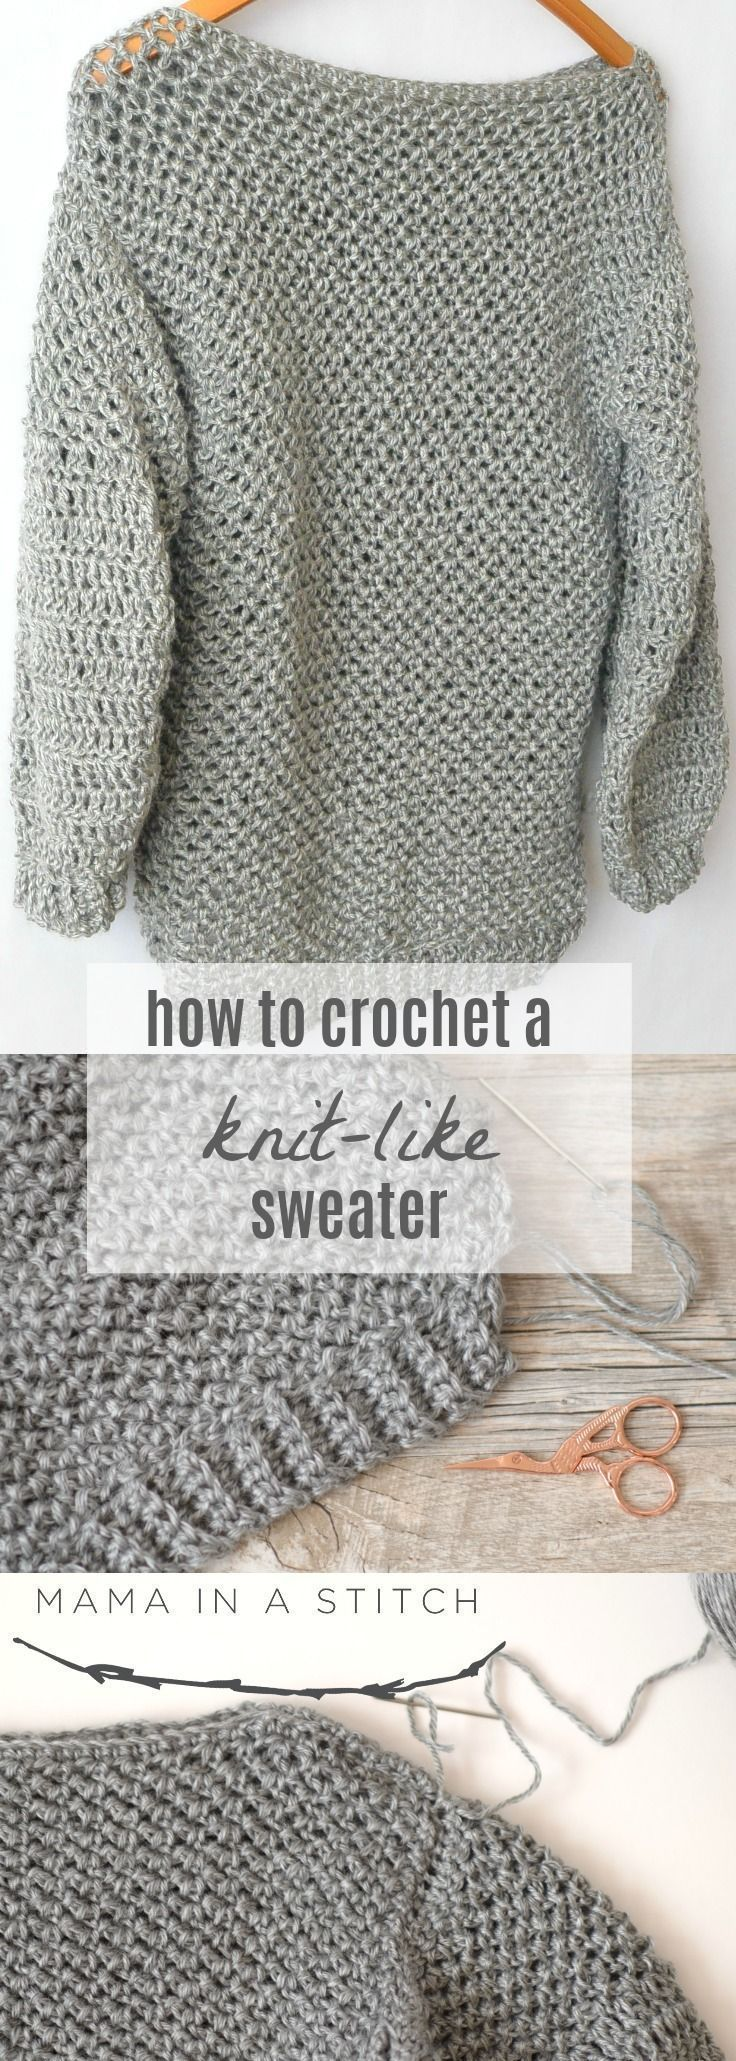 How To Make An Easy Crocheted Sweater (Knit-Like) via Mama In A Stitch Knit and …